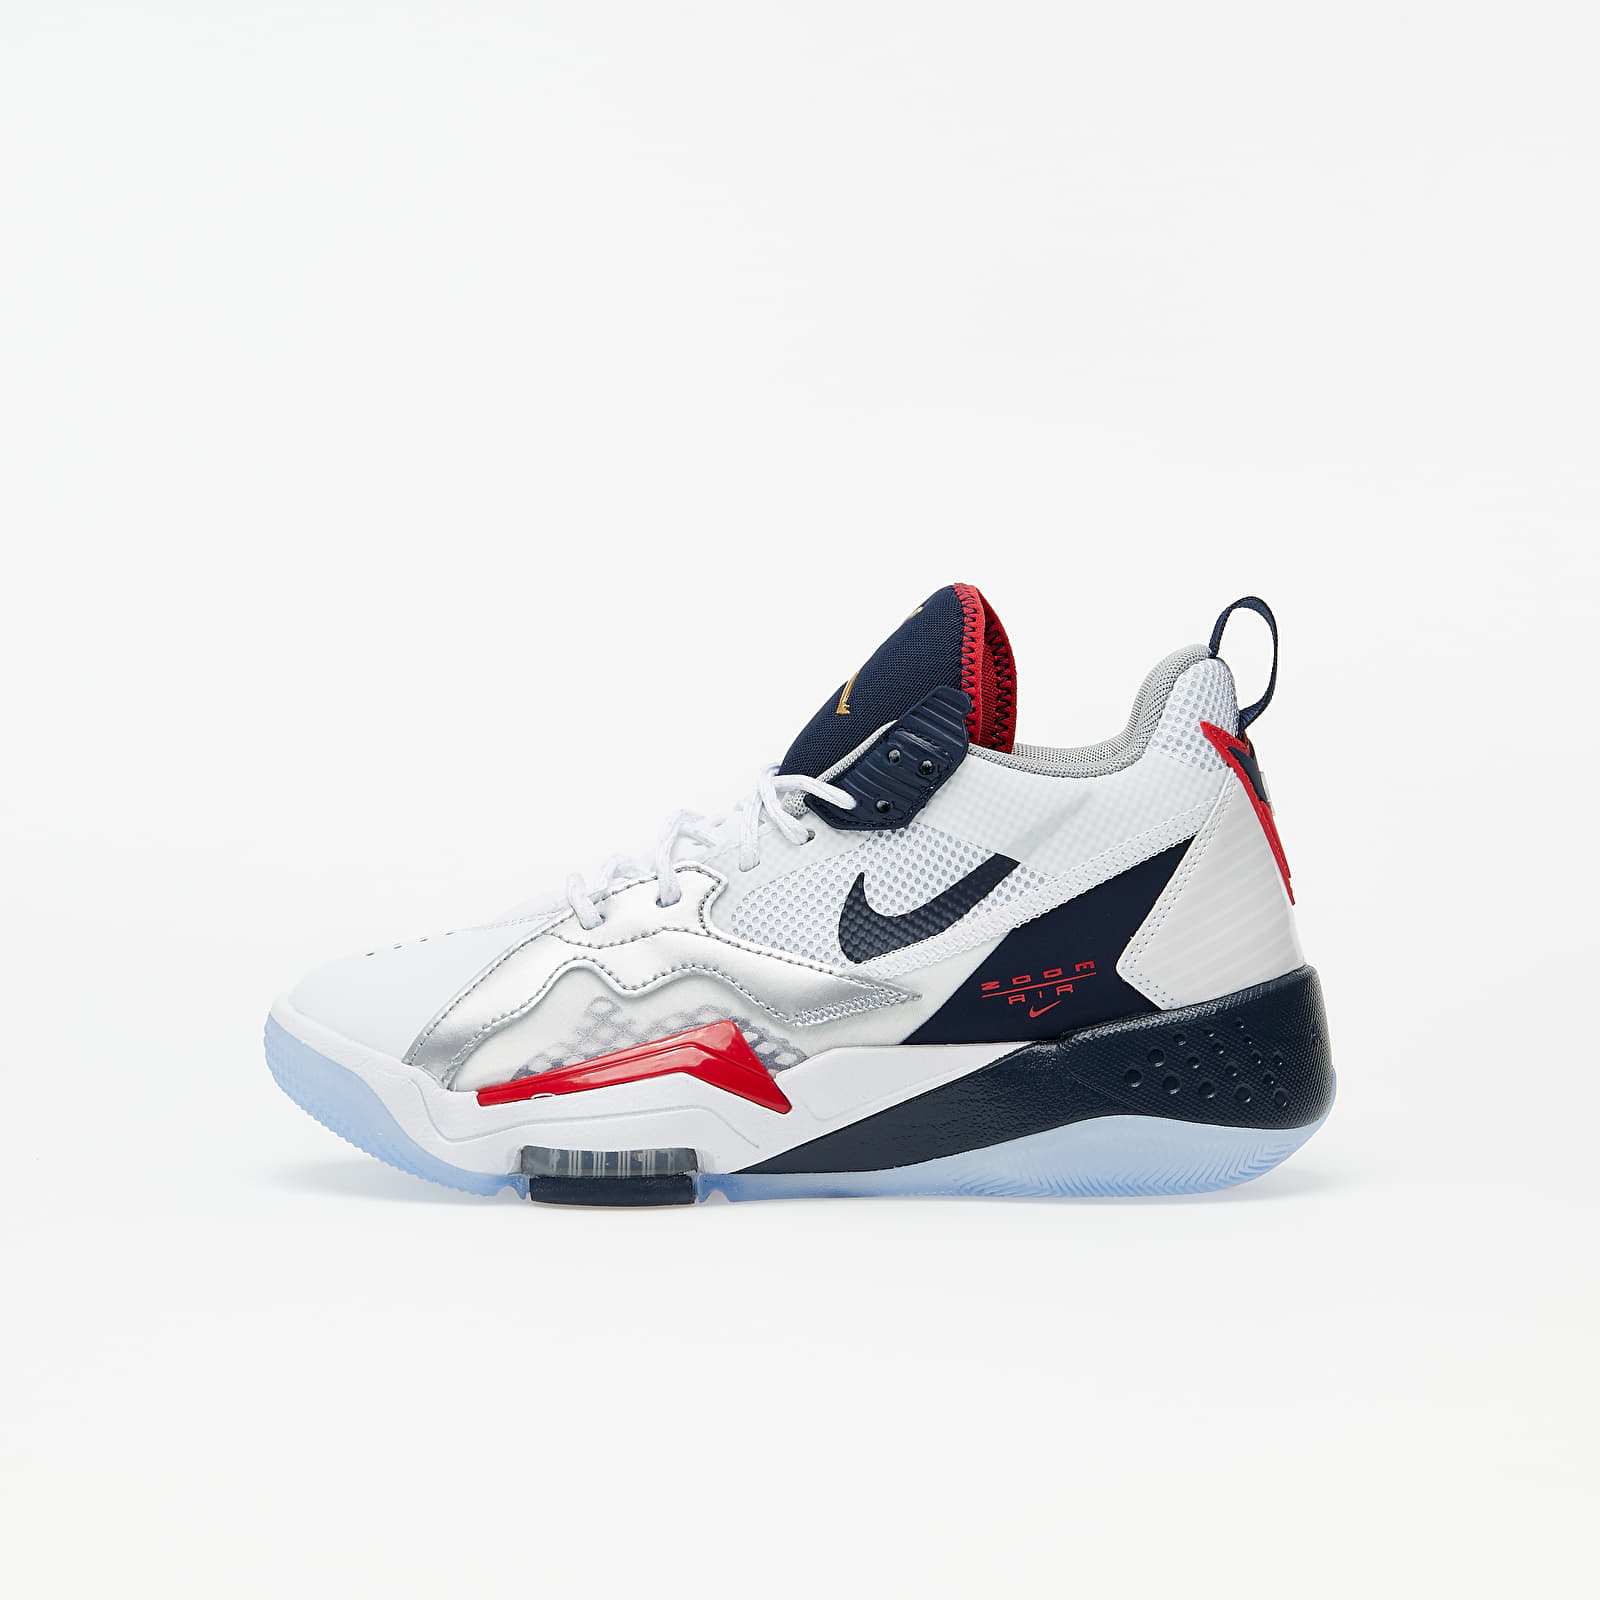 Chaussures et baskets enfants Jordan Zoom '92 (GS) White/ Obsidian-True Red-Metallic Silver